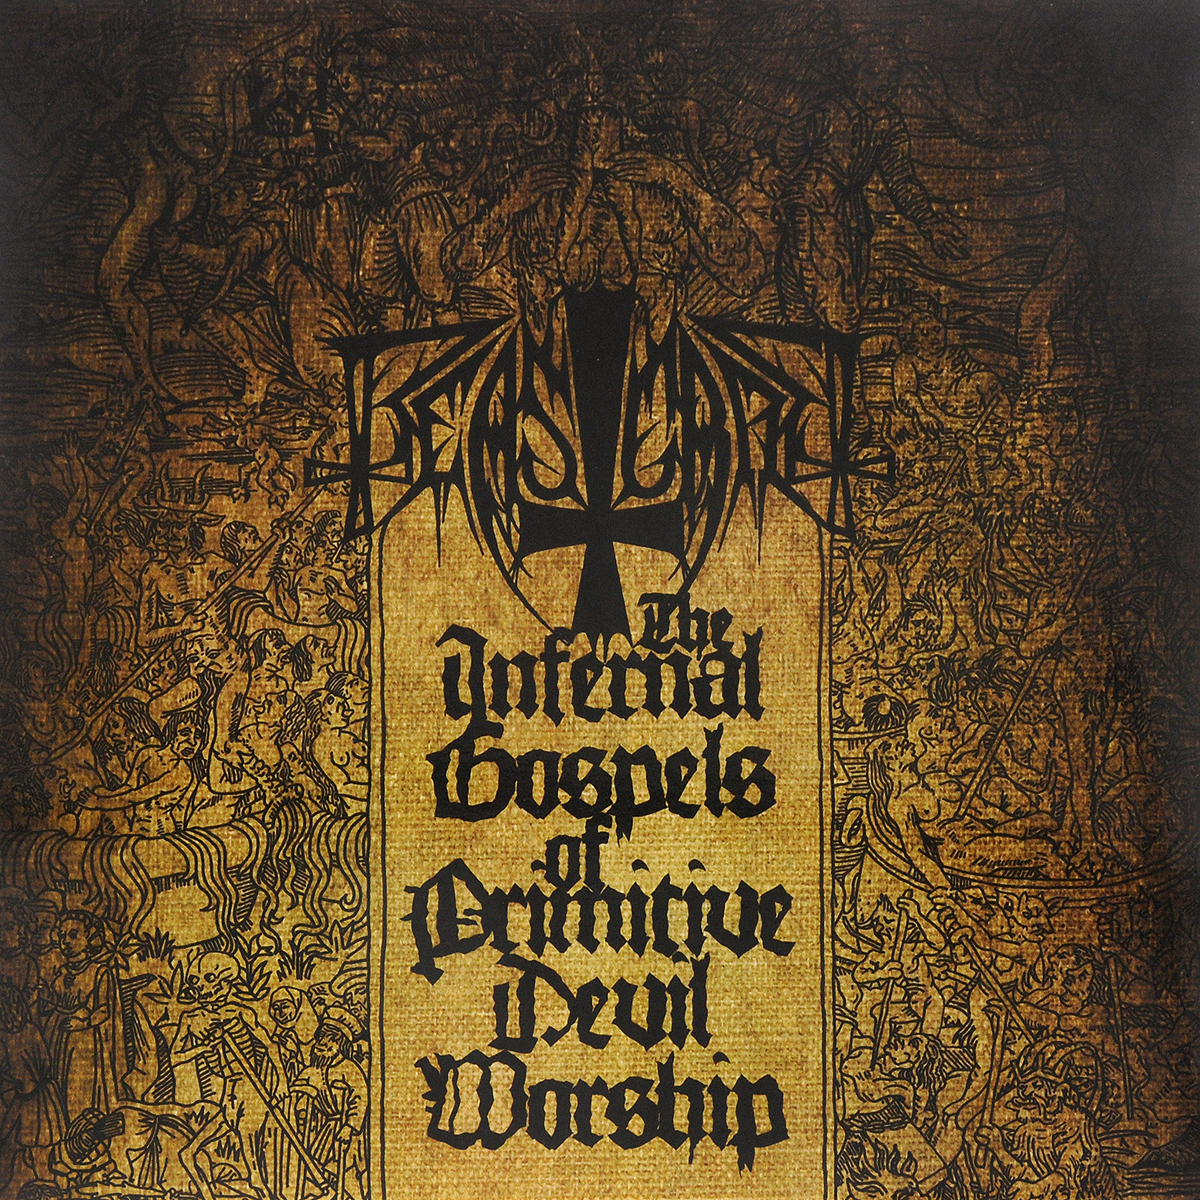 Beastcraft Beastcraft. The Infernal Gospels Of Primitive Devil Worship (LP) резак olfa с наклоном лезвия 45 градусов с 2 мя лезвиями mcb mount cutter ol mc 45 2b